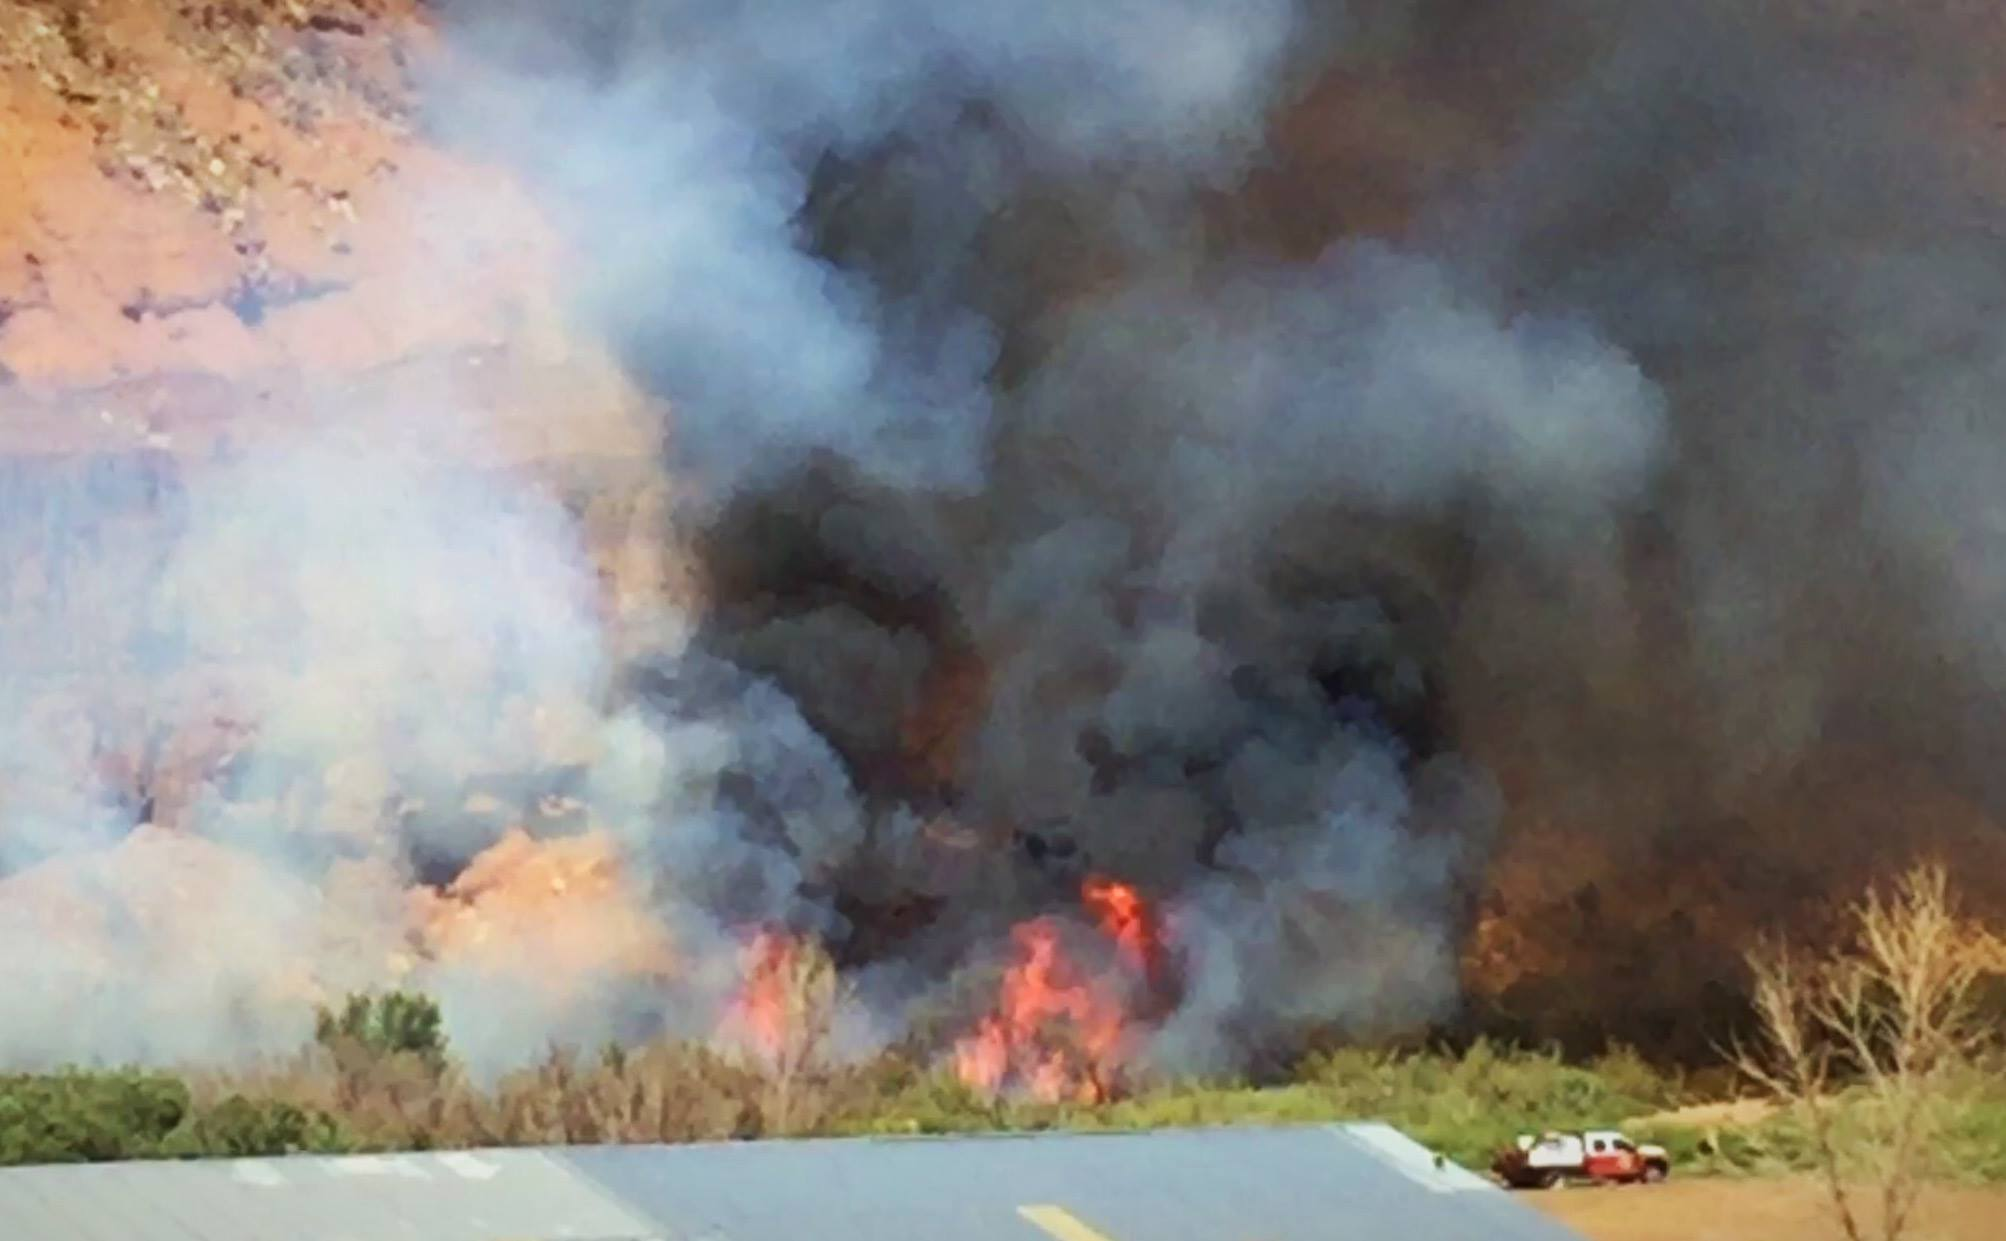 A farmer's controlled burn quickly spread out of control making its way to the south edge of the Virgin River in an area just north of 800 S. 1900 East, Washington City, Utah, Sept. 8, 2016 | Photo by Kimberly Scott, St. George News